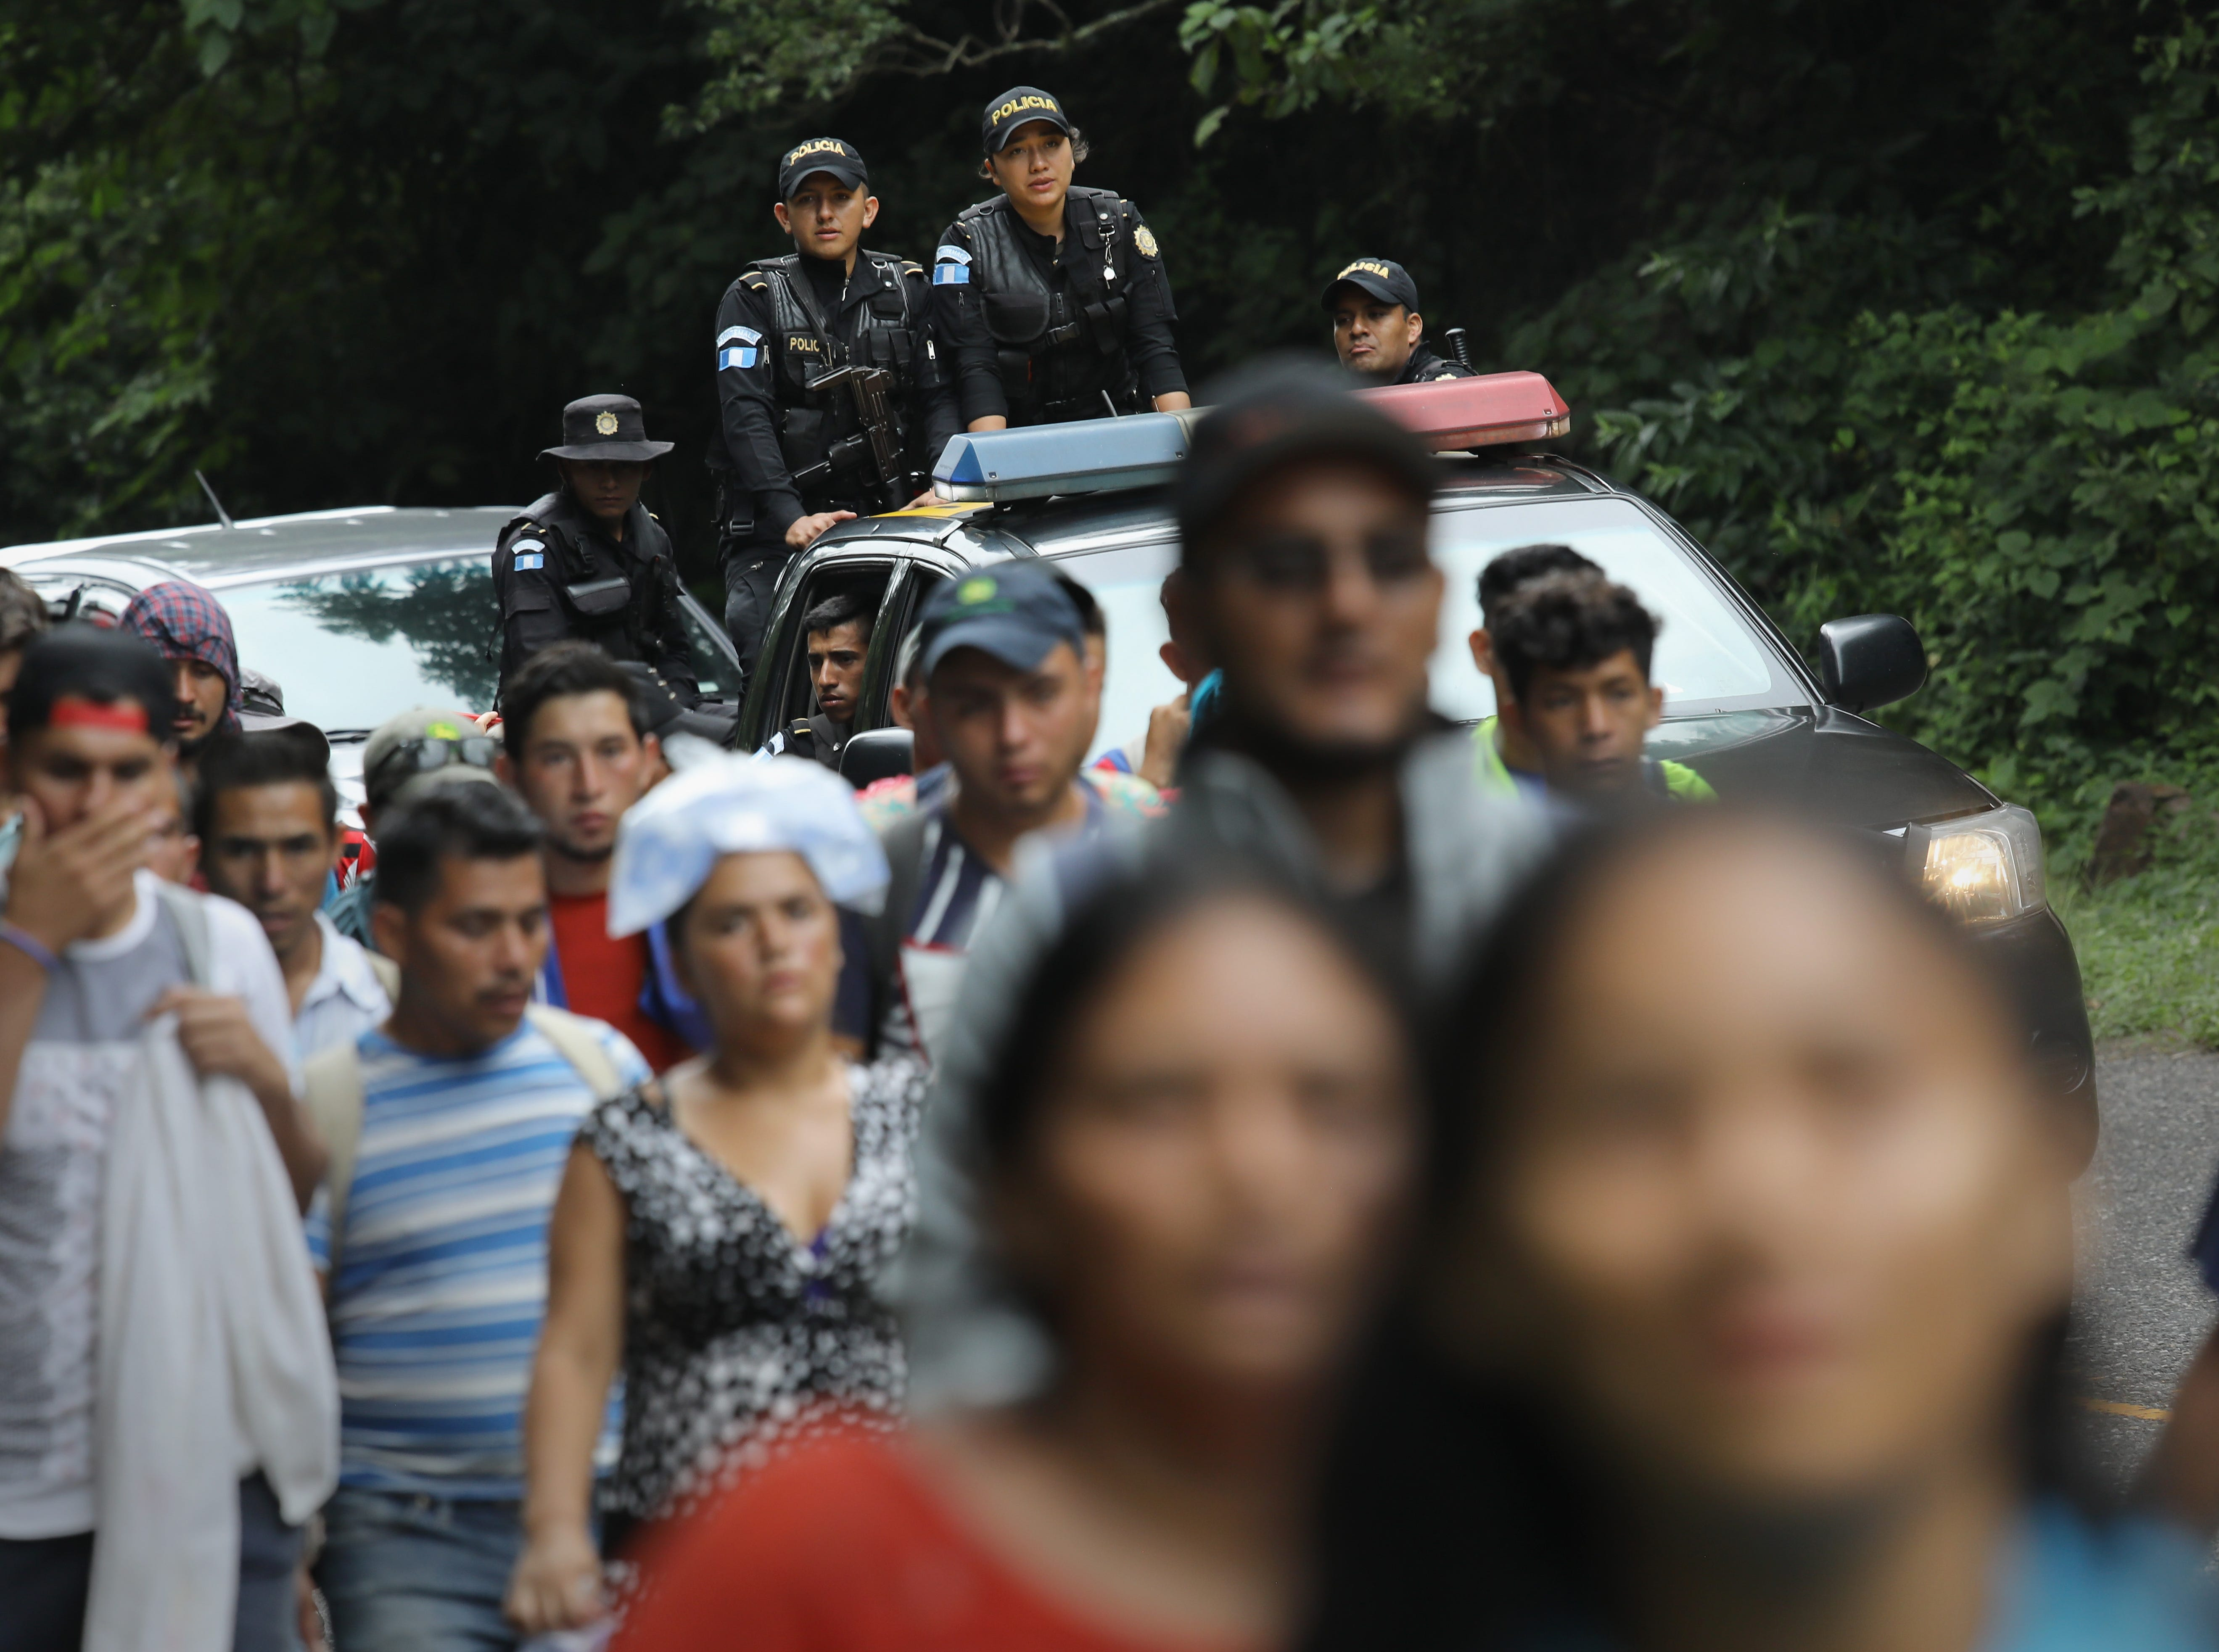 QUEZALTEPEQUE, GUATEMALA - OCTOBER 16:  As Guatemalan police look on, Honduran immigrants, some of more than 1,500 people traveling in a migrant caravan, walk north on October 16, 2018 near Quezaltepeque, Guatemala. A caravan of Central Americans, the second of its kind in 2018, began in San Pedro Sula, Honduras with plans to march north through Guatemala and Mexico in route to the United States. Honduras has some of the highest crime and poverty rates in Latin America. (Photo by John Moore/Getty Images)